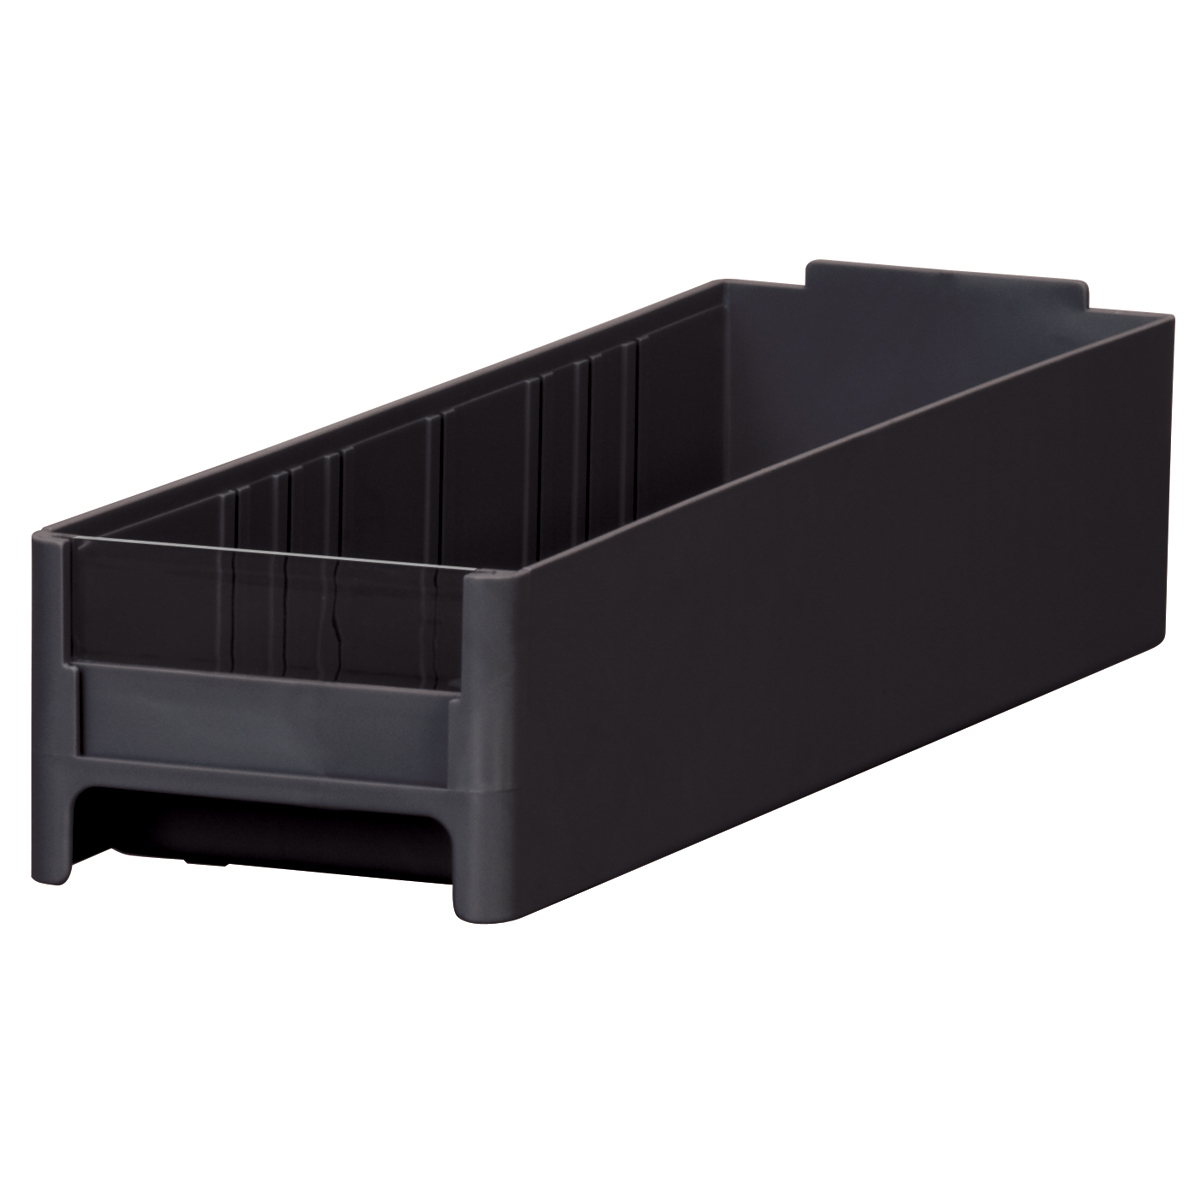 19-Series Cabinet Drawer 3-3/16 x 2-1/16 x 10-9/16, Black.  This item sold in carton quantities of 40.